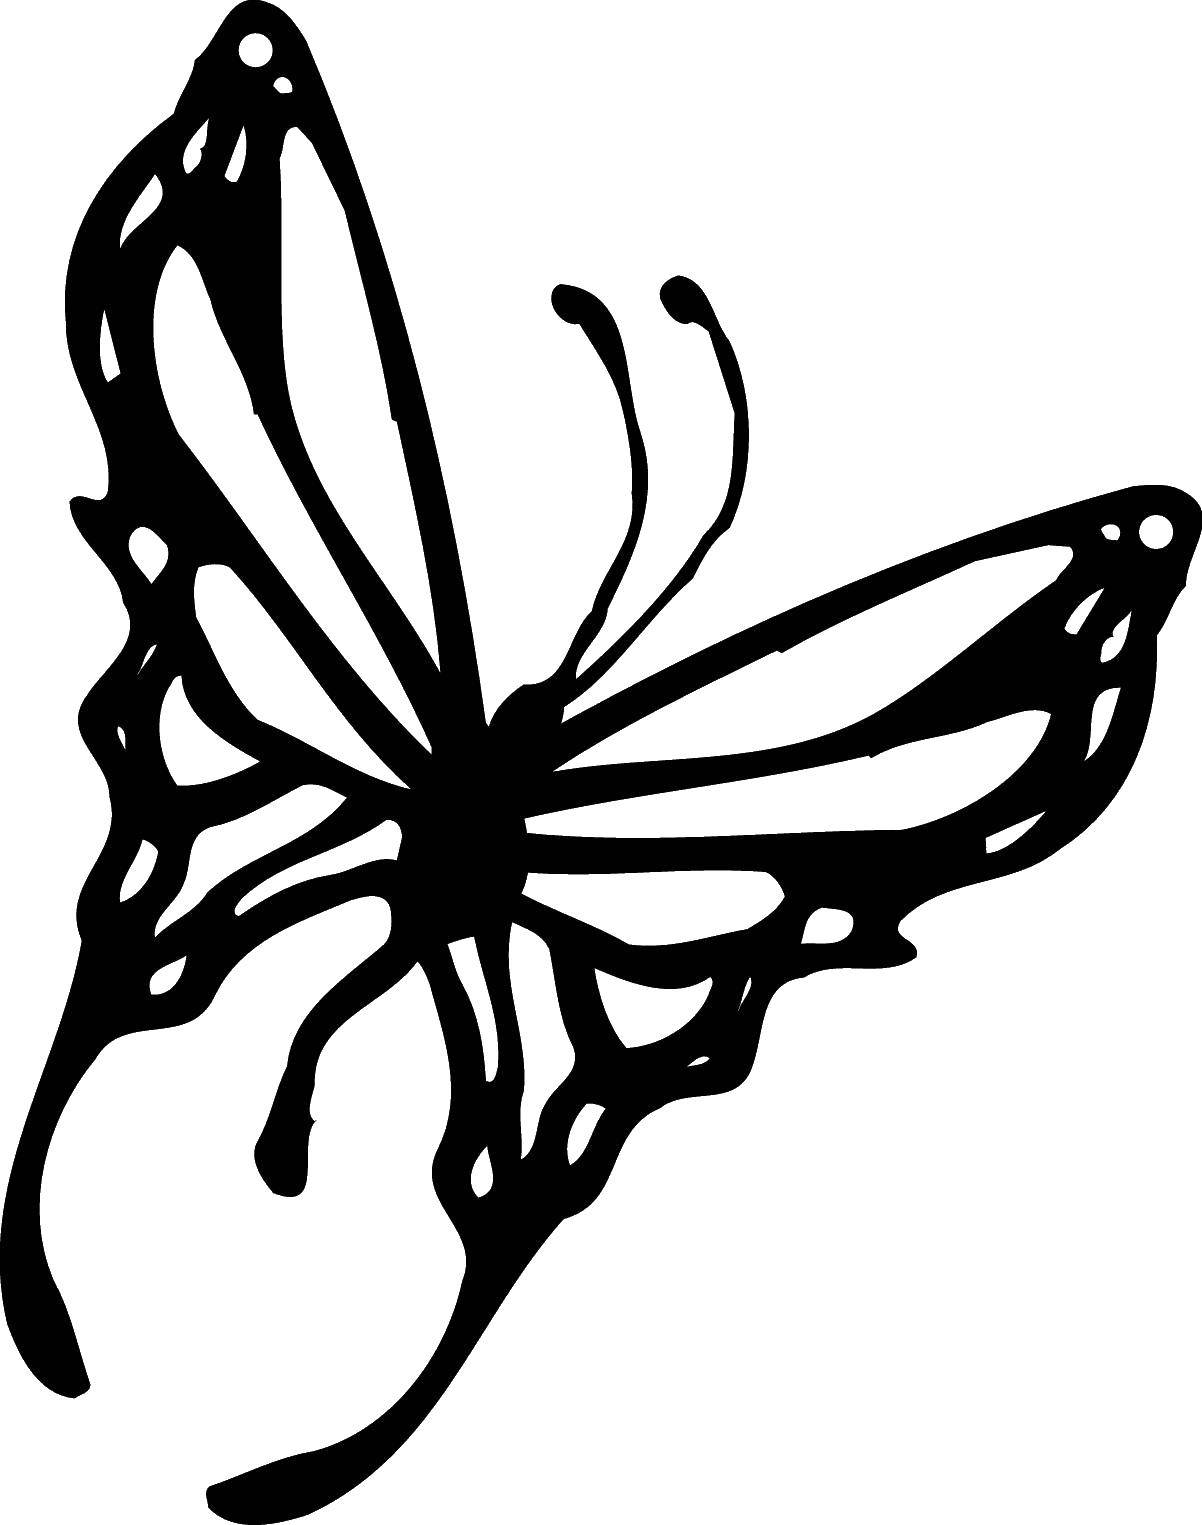 Coloring sheet the contours for cutting out butterflies Download rockets, spaceships, space.  Print ,rockets,